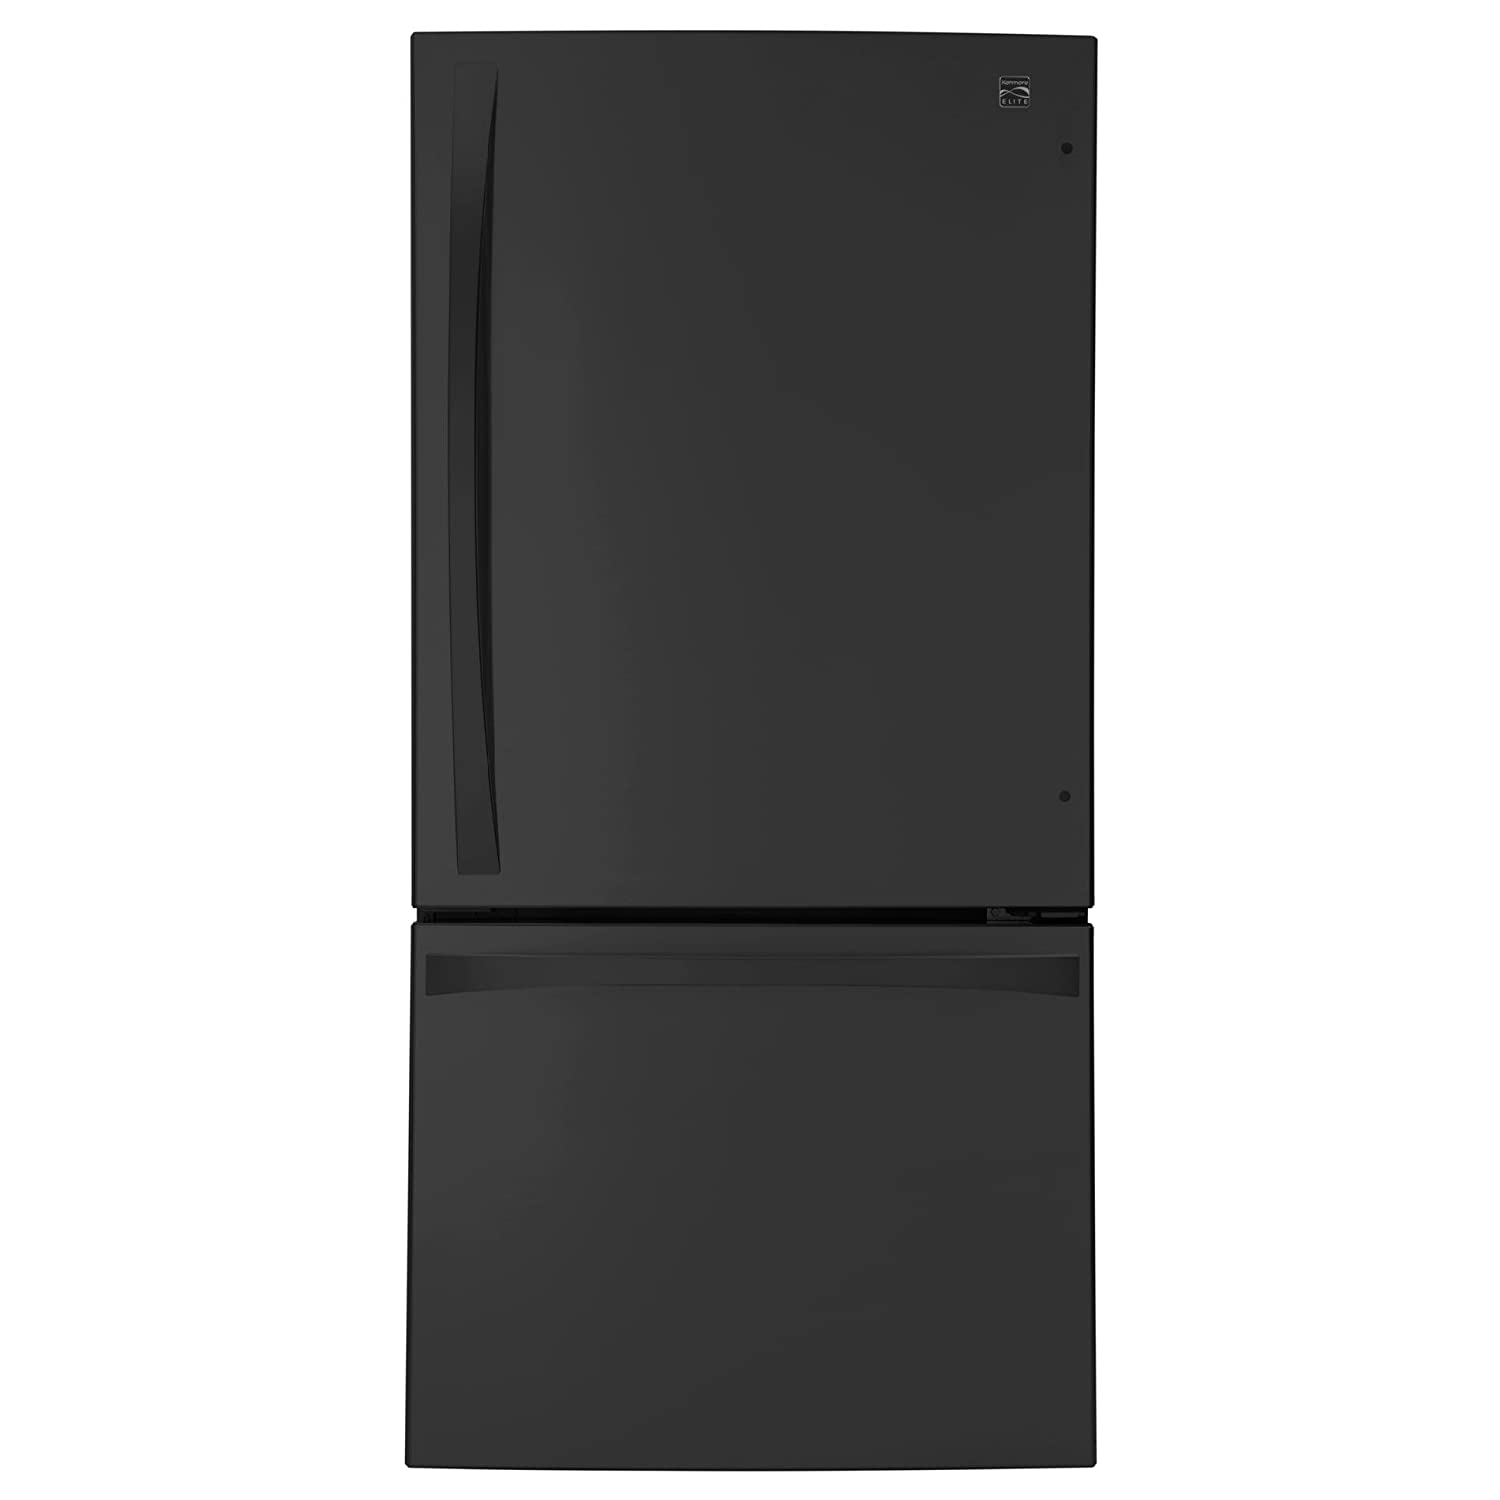 kenmore elite refrigerator 106.5 manual